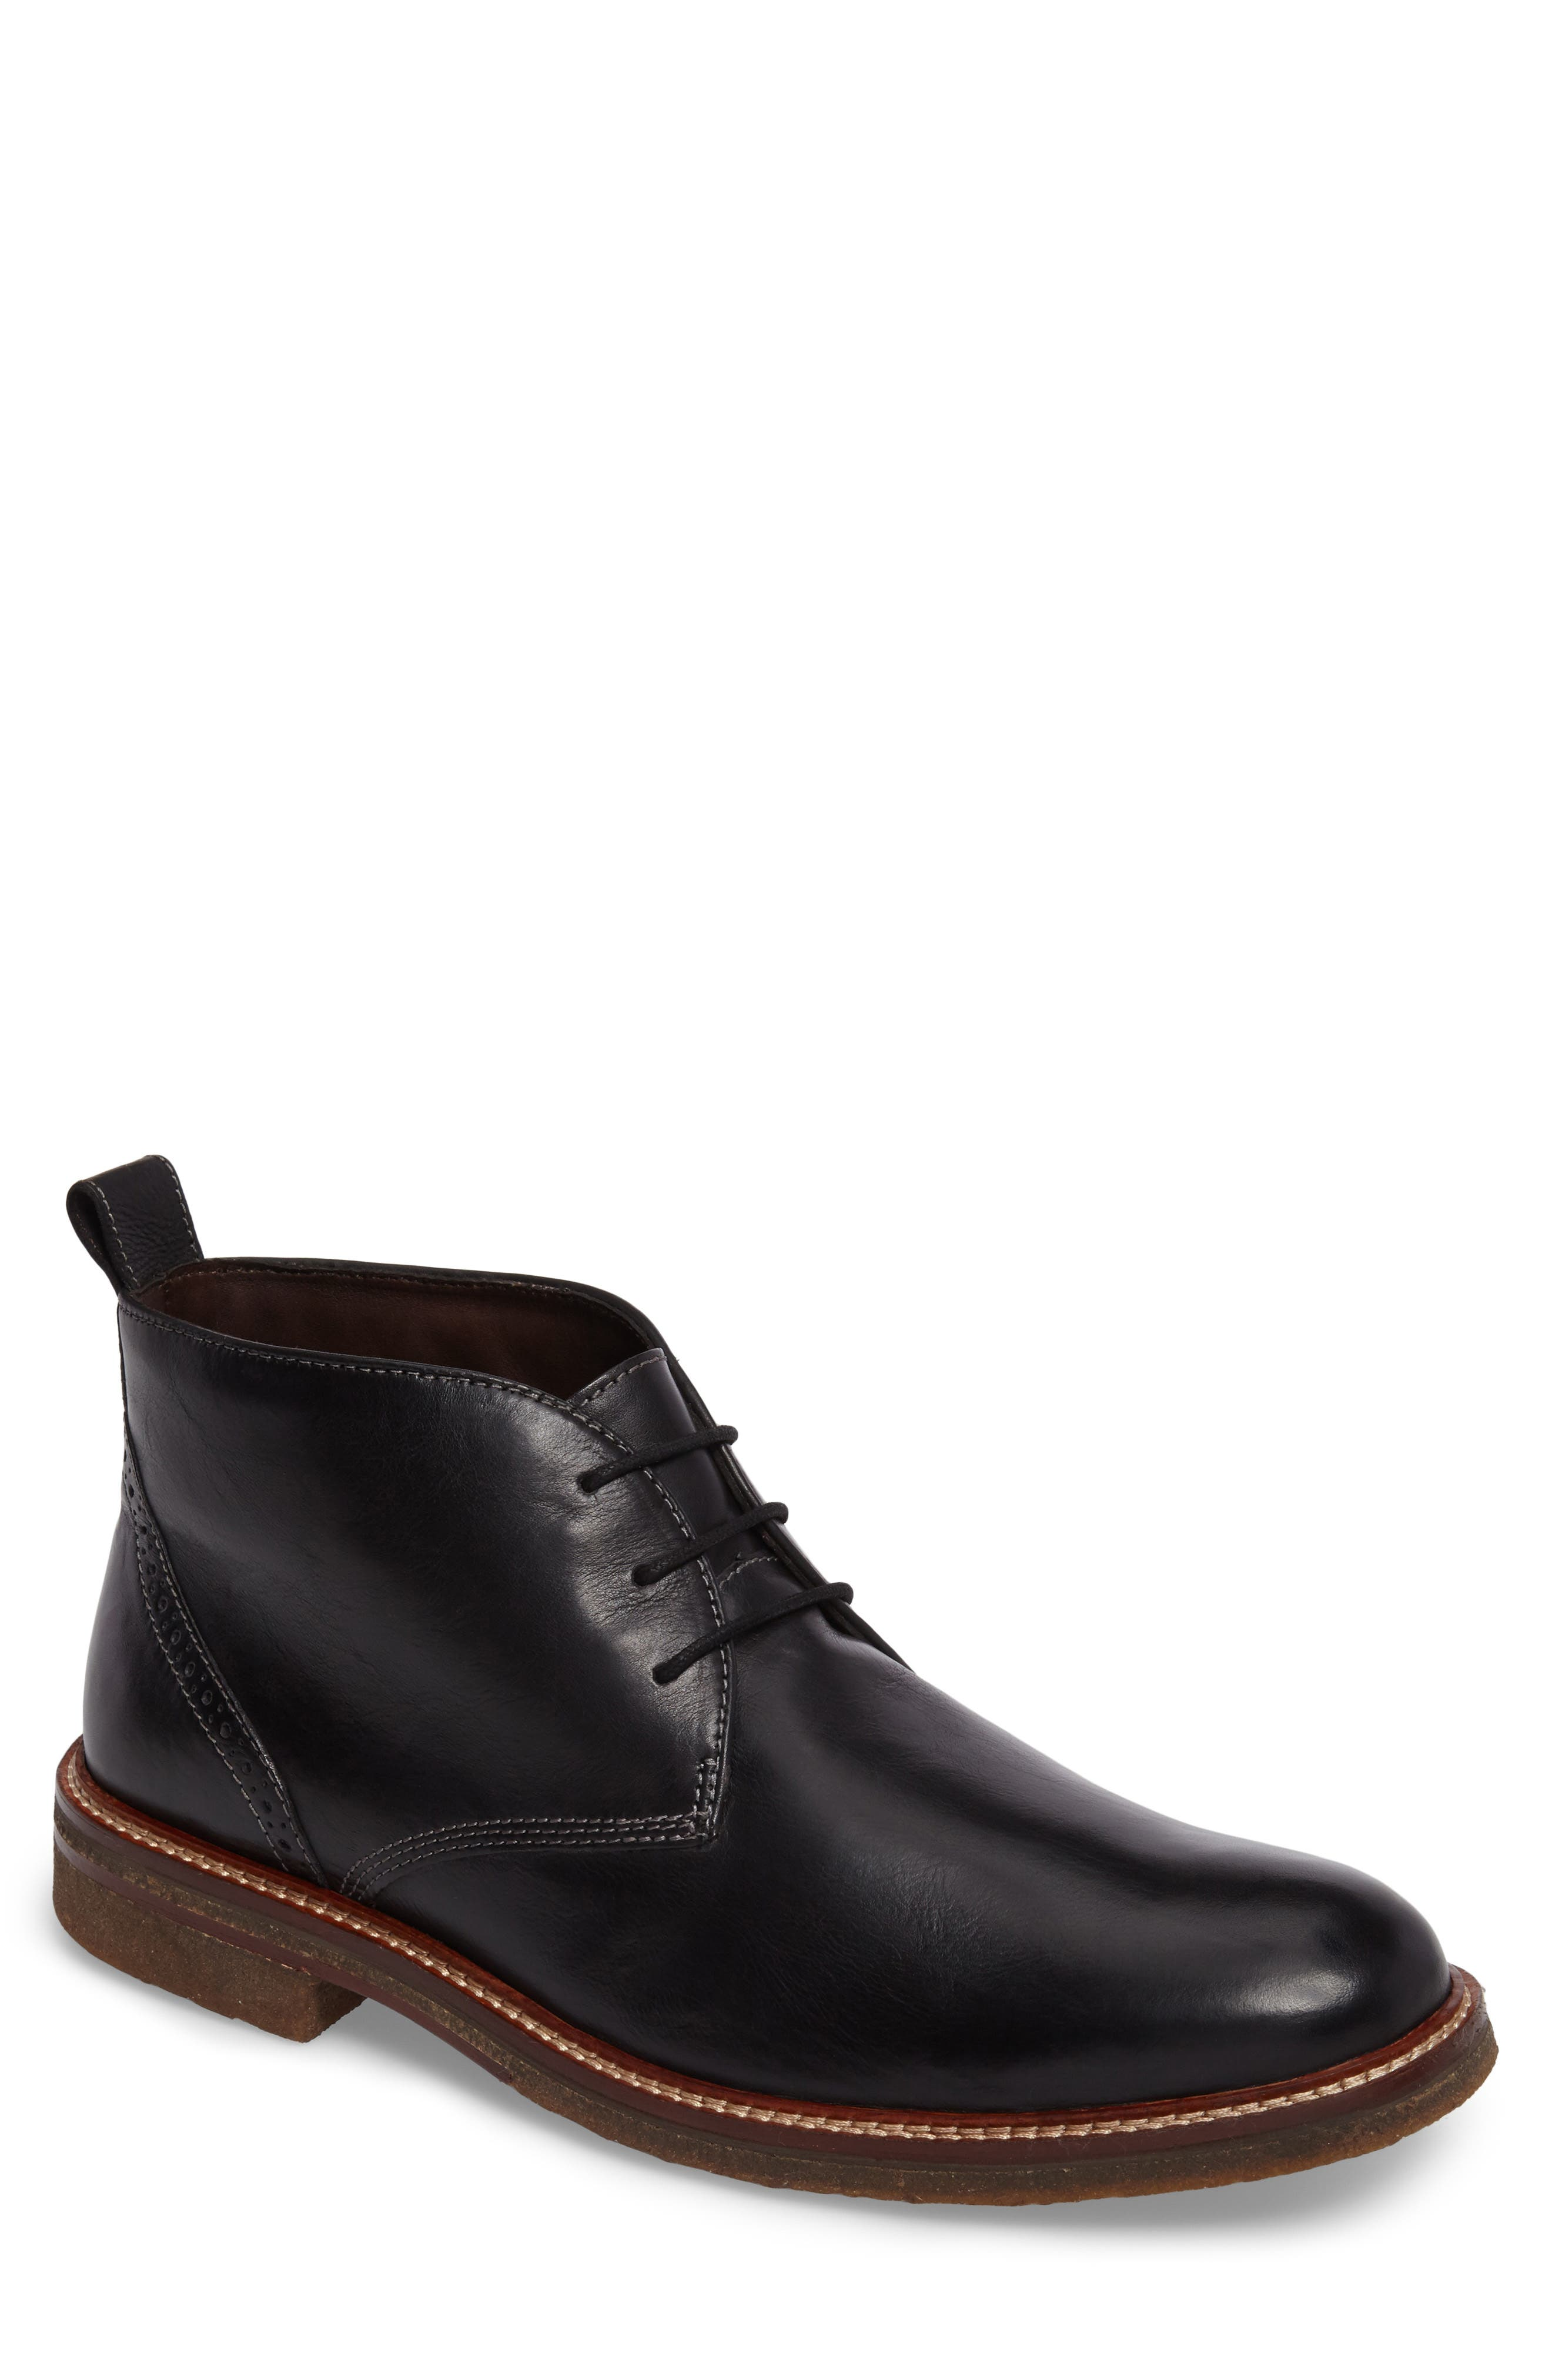 Forrester Chukka Boot,                         Main,                         color, 001